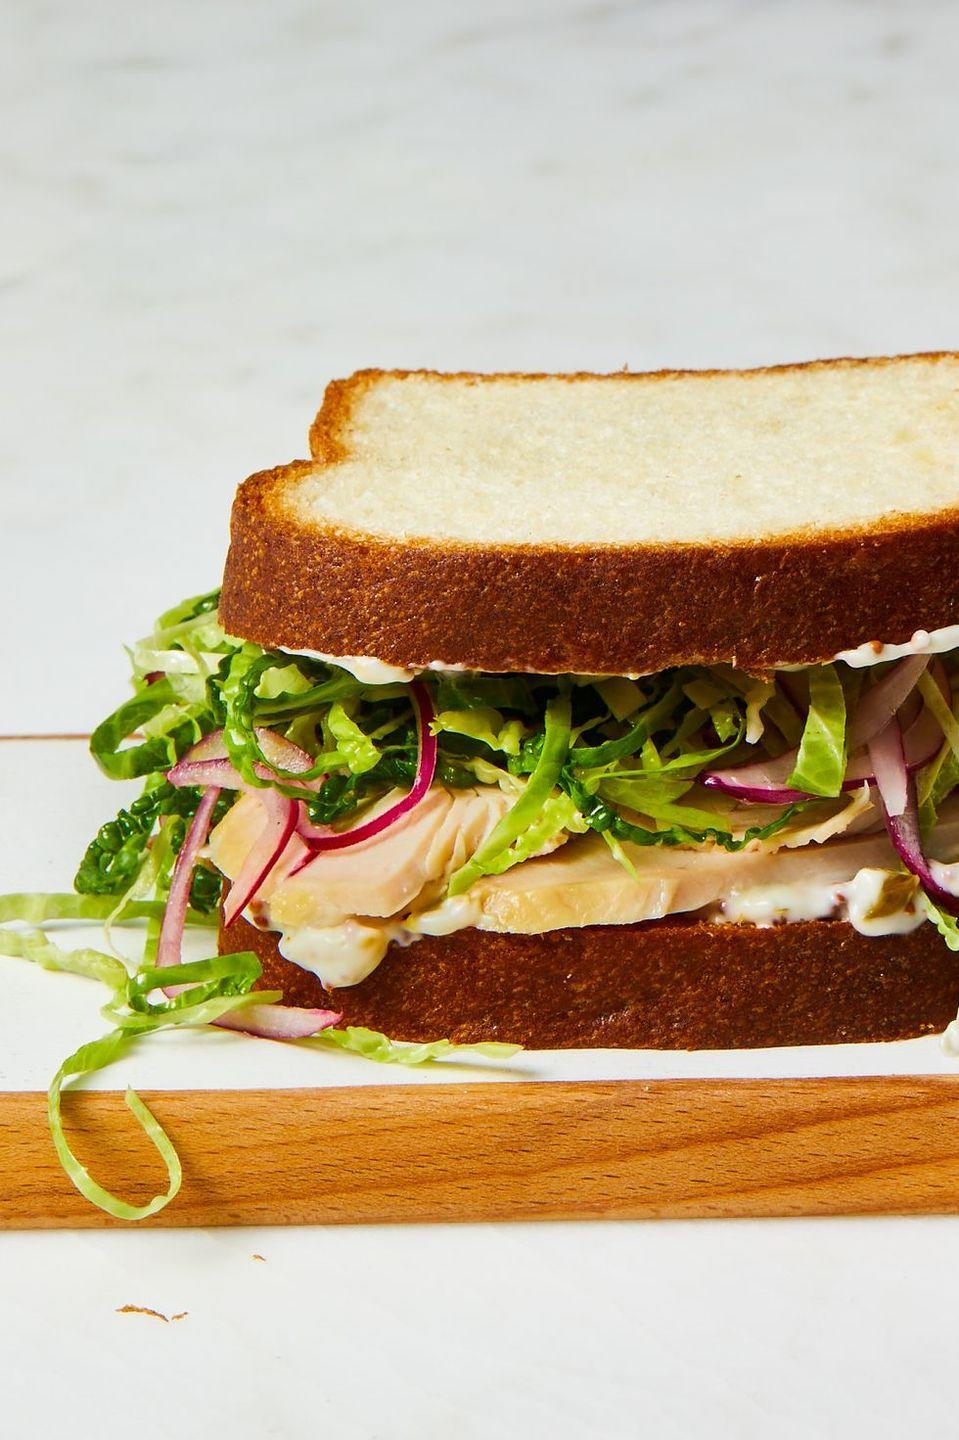 """<p>We'll let you in on a little secret: A drizzle of hot honey brings a slightly sweet-spicy element to sandwiches.</p><p><em><a href=""""https://www.goodhousekeeping.com/food-recipes/easy/a29459746/leftover-turkey-sandwich-recipe/"""" rel=""""nofollow noopener"""" target=""""_blank"""" data-ylk=""""slk:Get the recipe for Leftover Turkey Sandwich »"""" class=""""link rapid-noclick-resp"""">Get the recipe for Leftover Turkey Sandwich »</a></em></p>"""